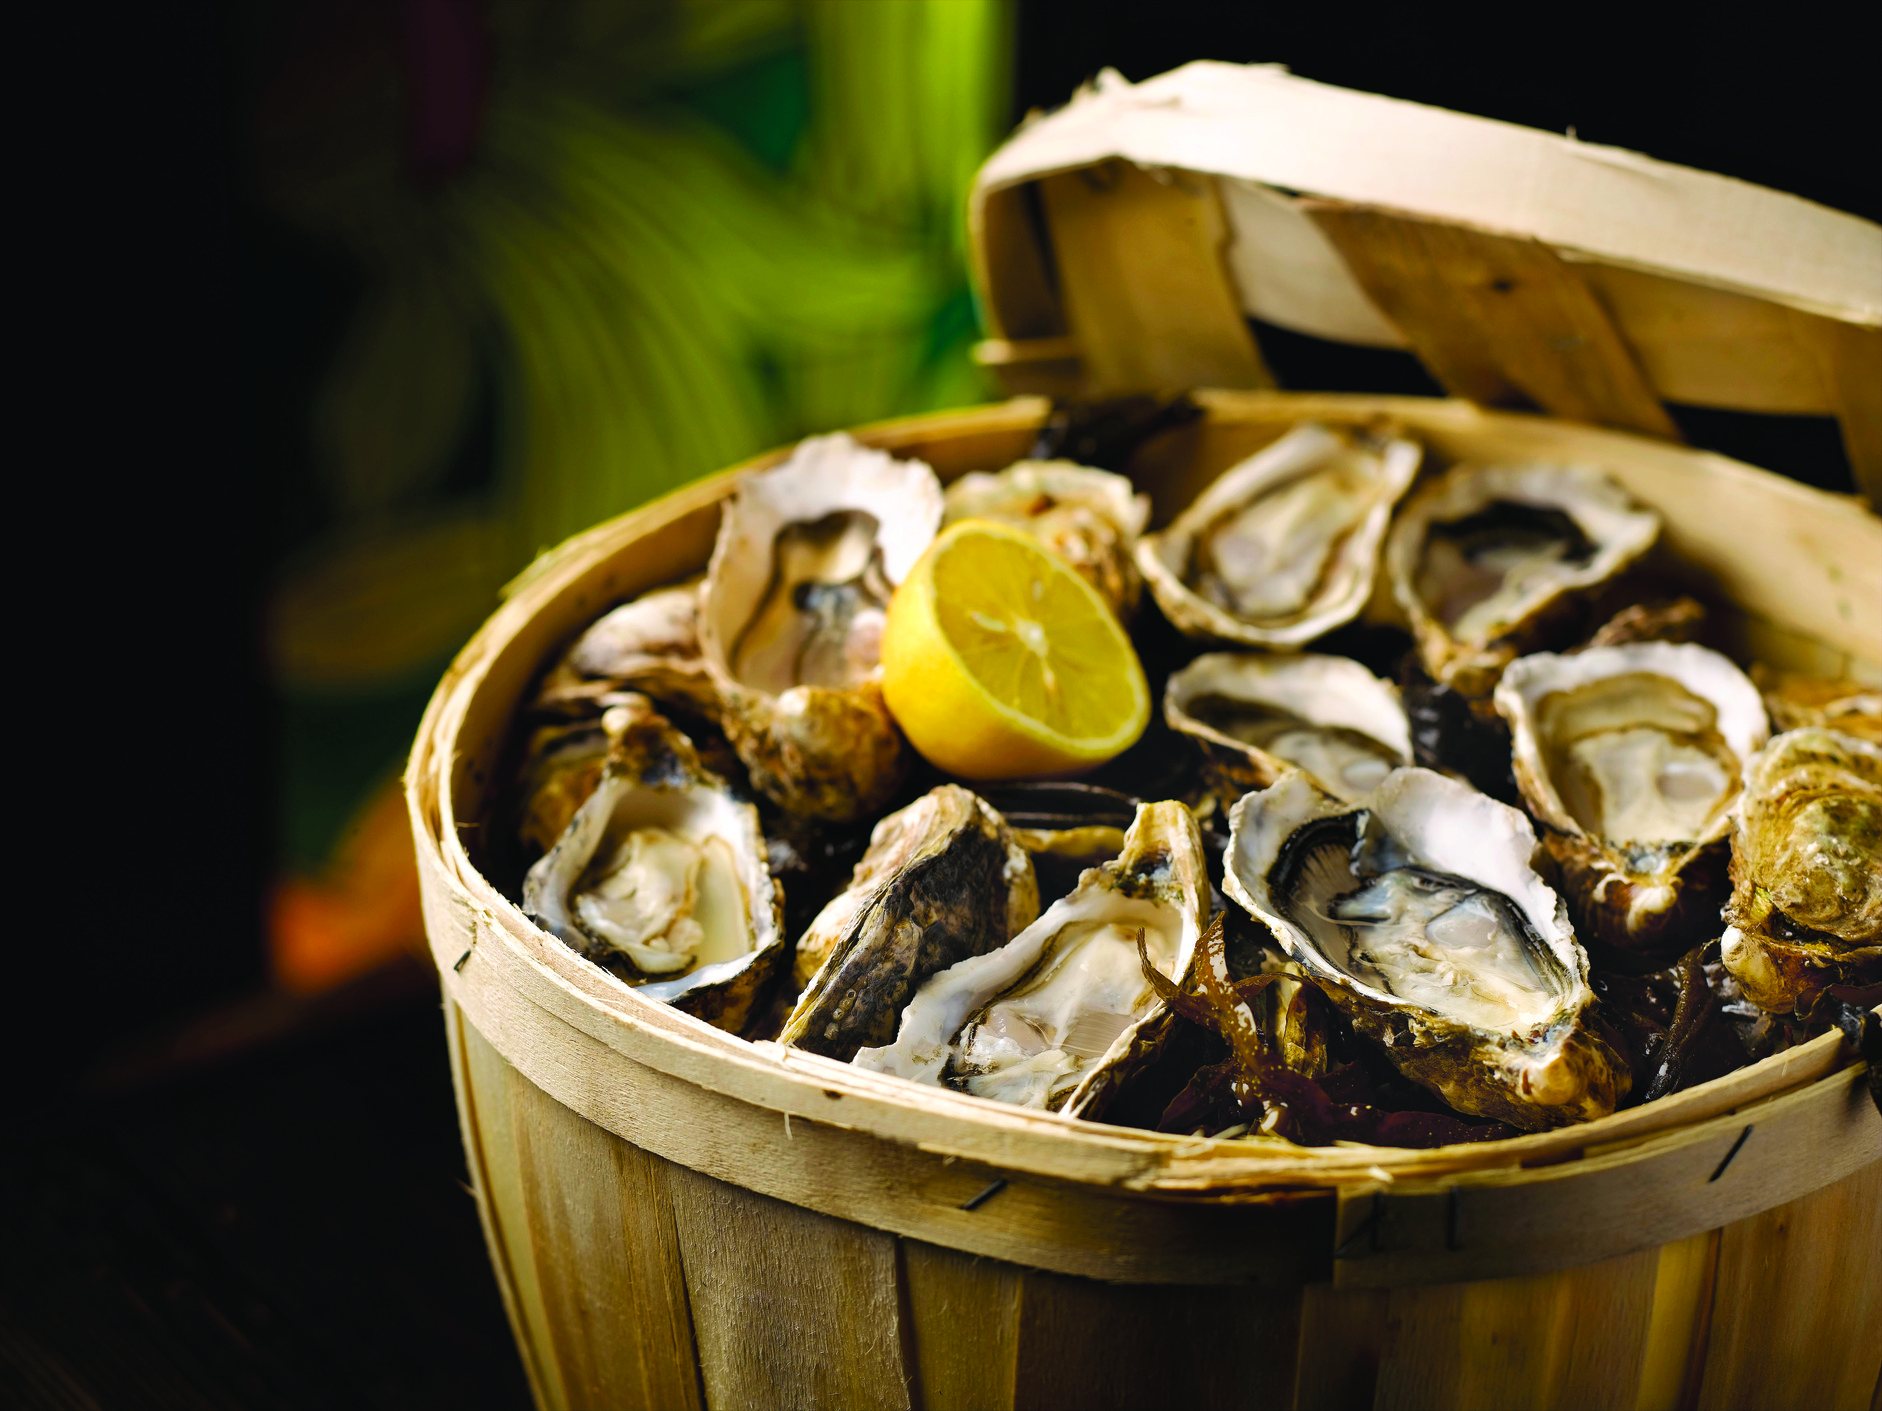 Wine and Oyster Promotion (S$99) at the Grand Hyatt Singapore   Photo Credit: Grand Hyatt Singapore